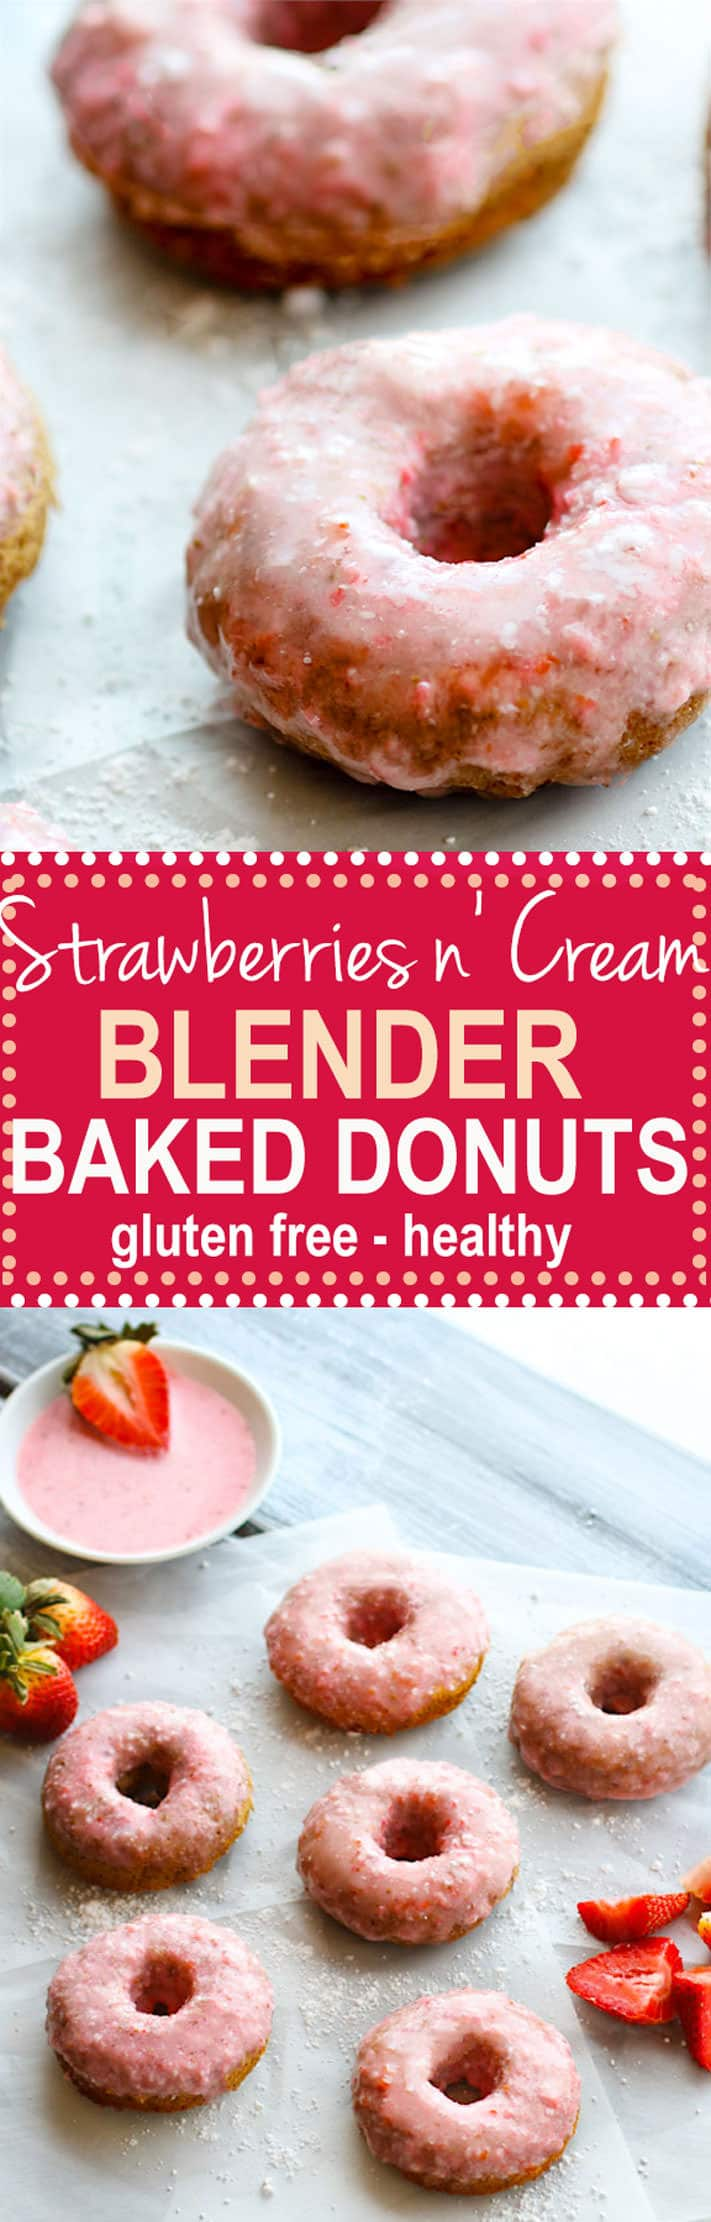 Strawberries N Cream Blender Baked Donuts Gluten Free